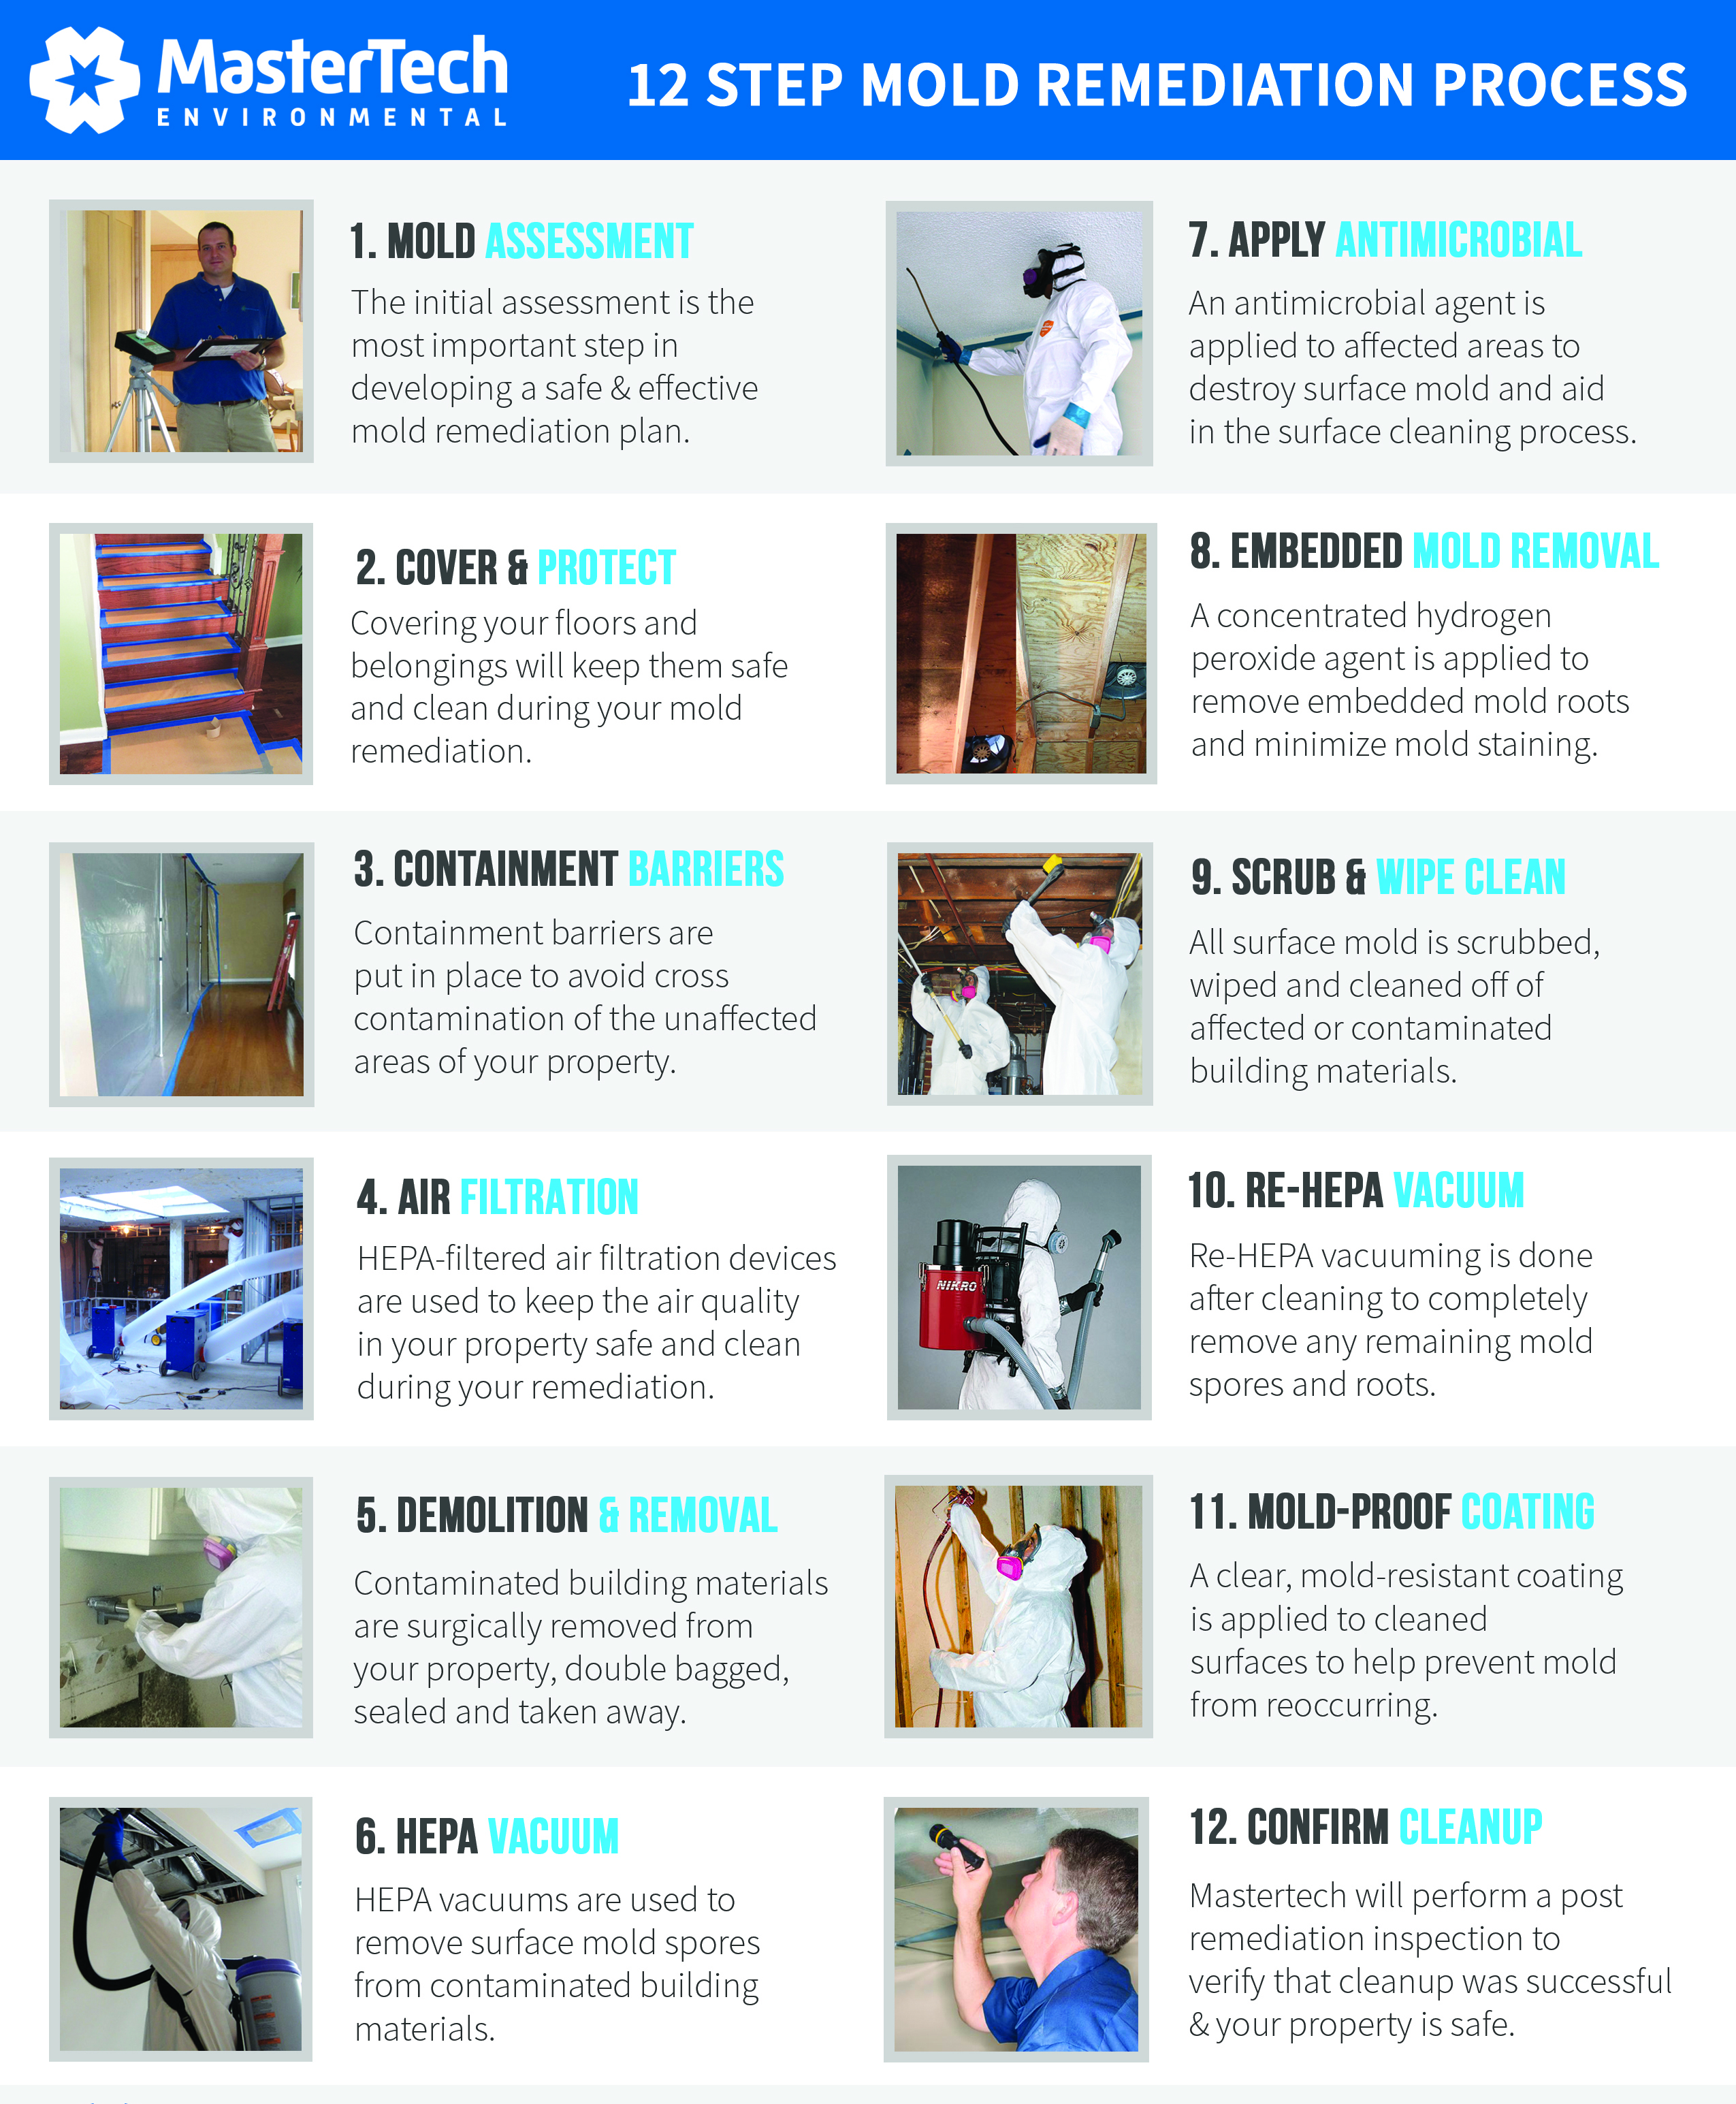 12-Step Mold Remediation Process Ocean County